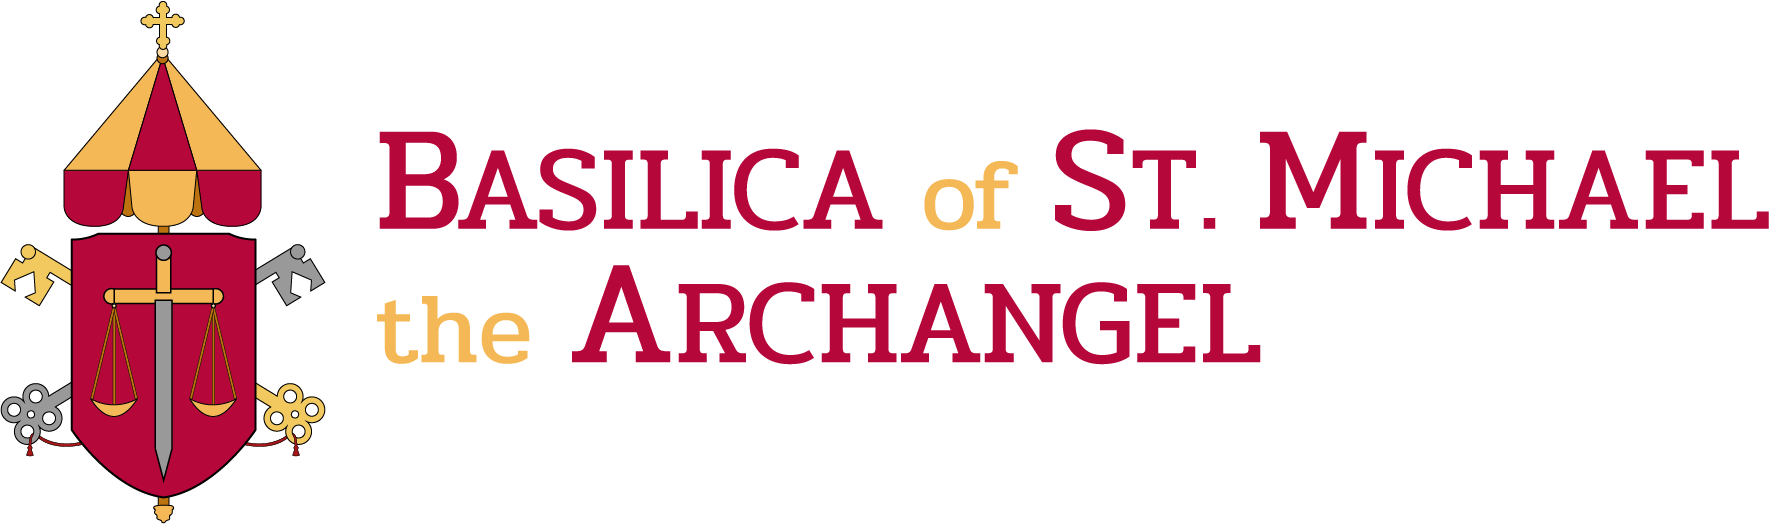 Bascilica of St. Michael logo